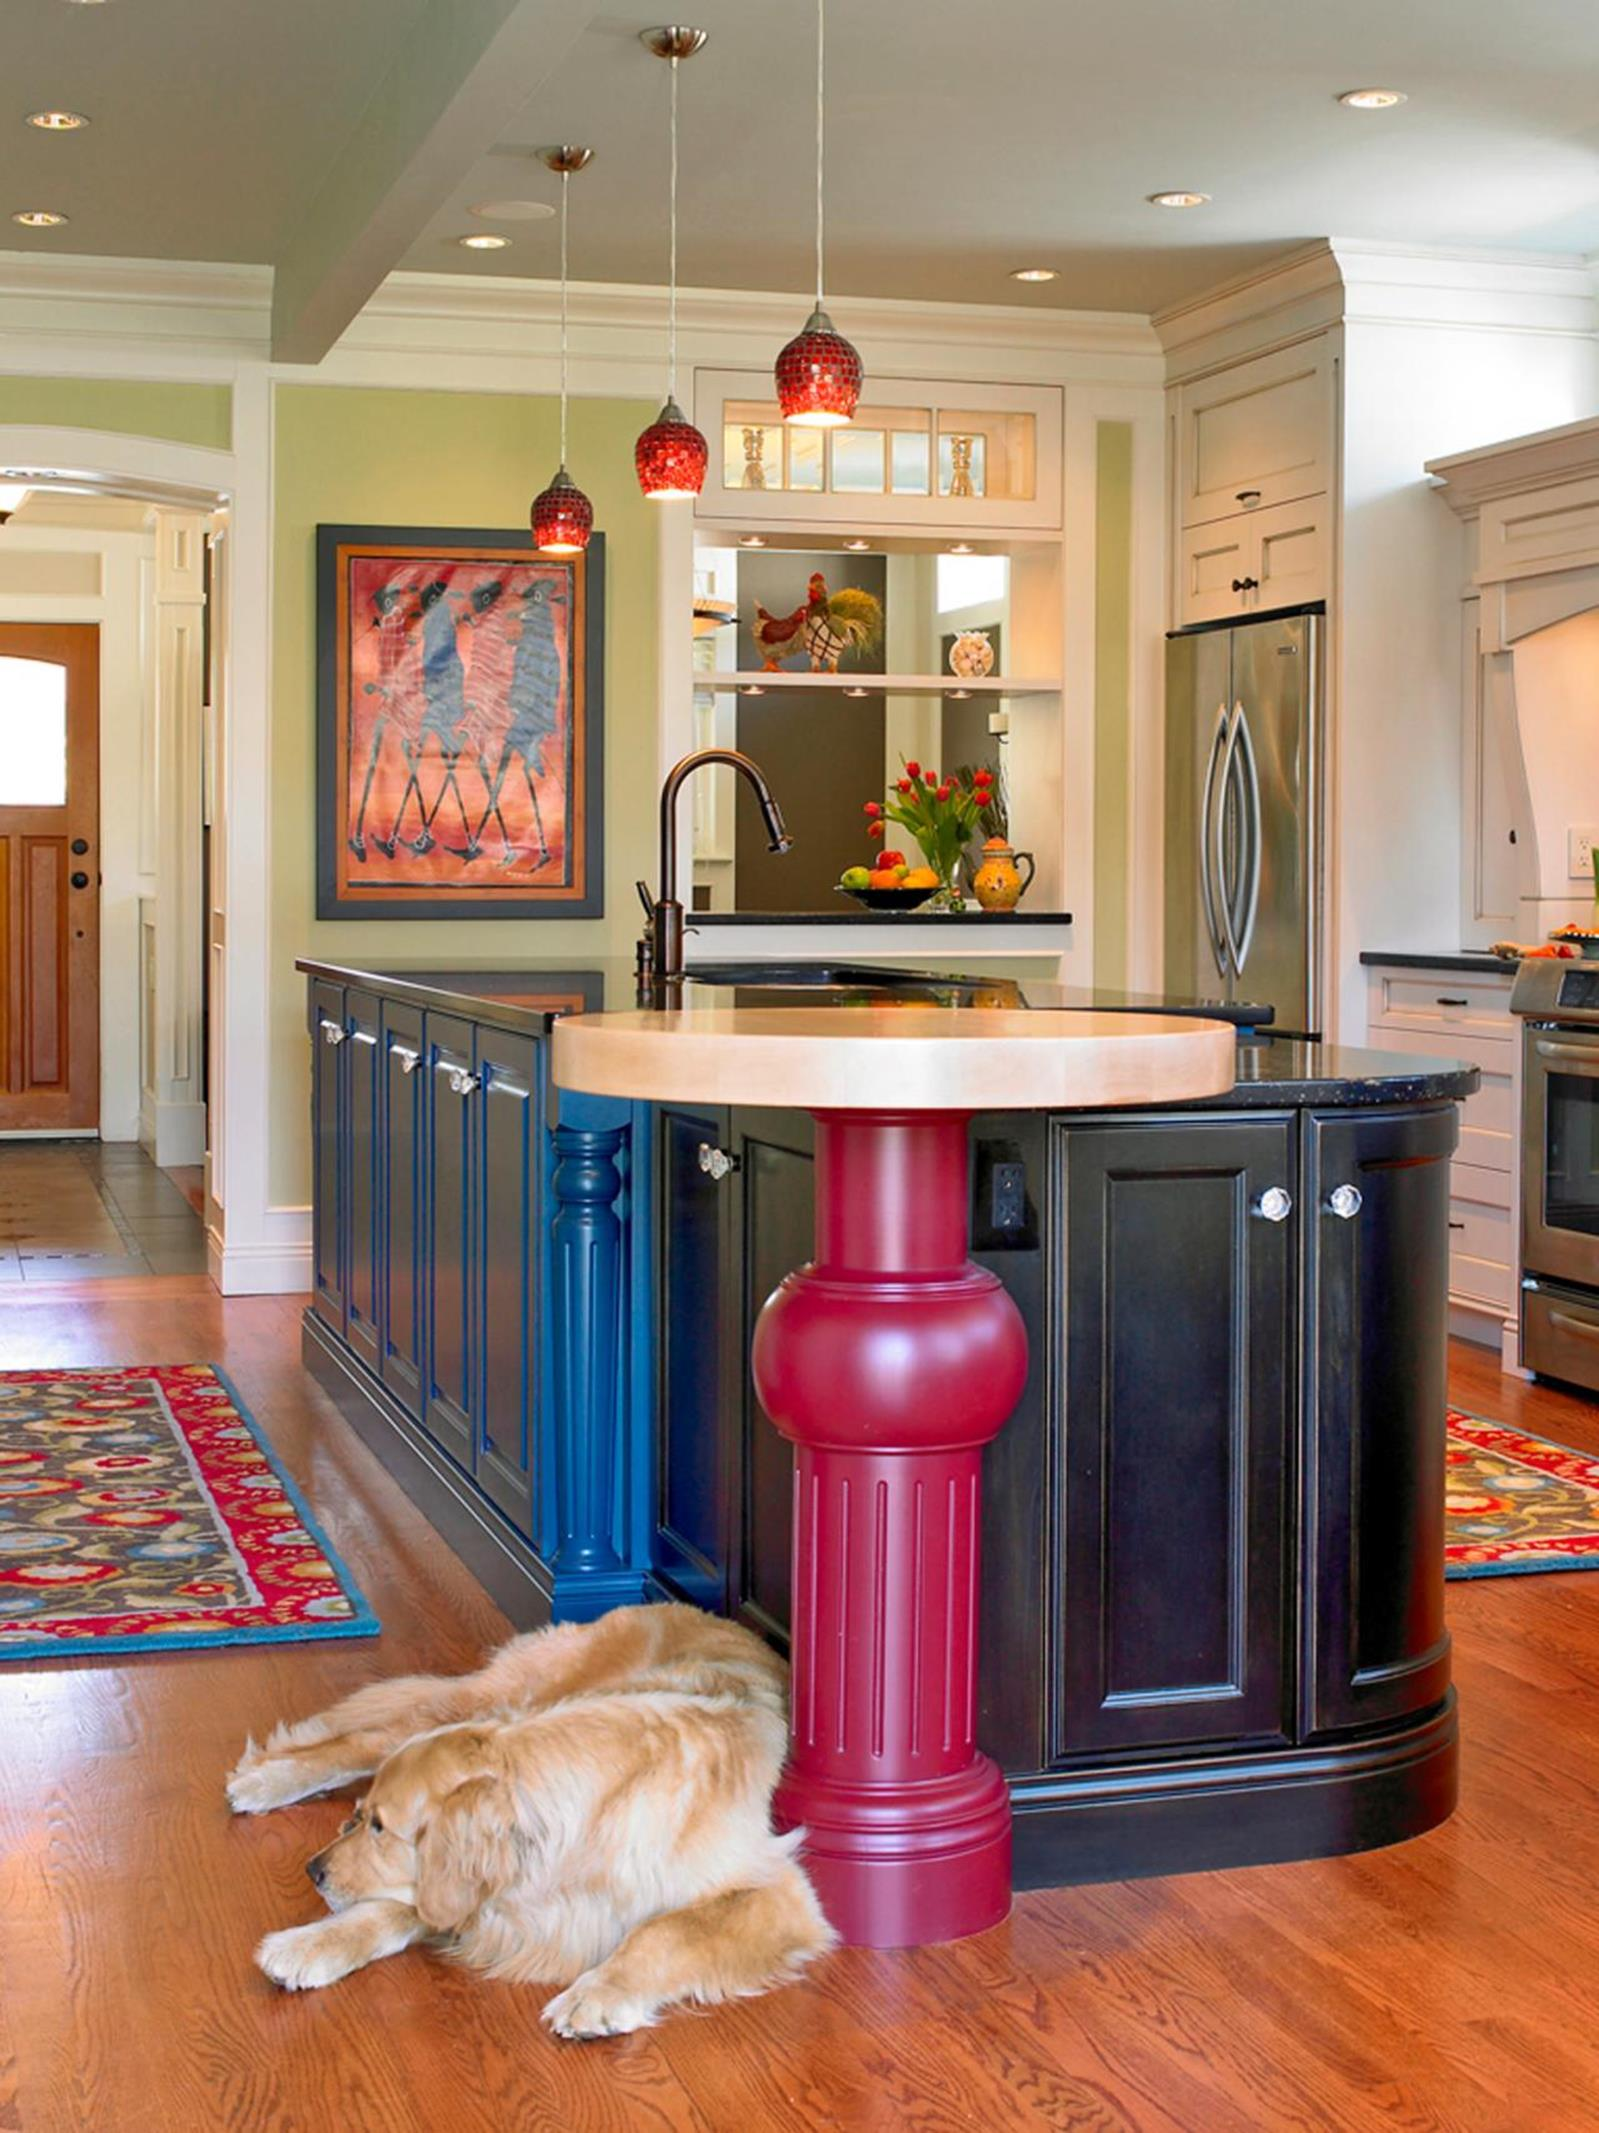 Projects to Make Kitchen More Neat and Beautiful 32